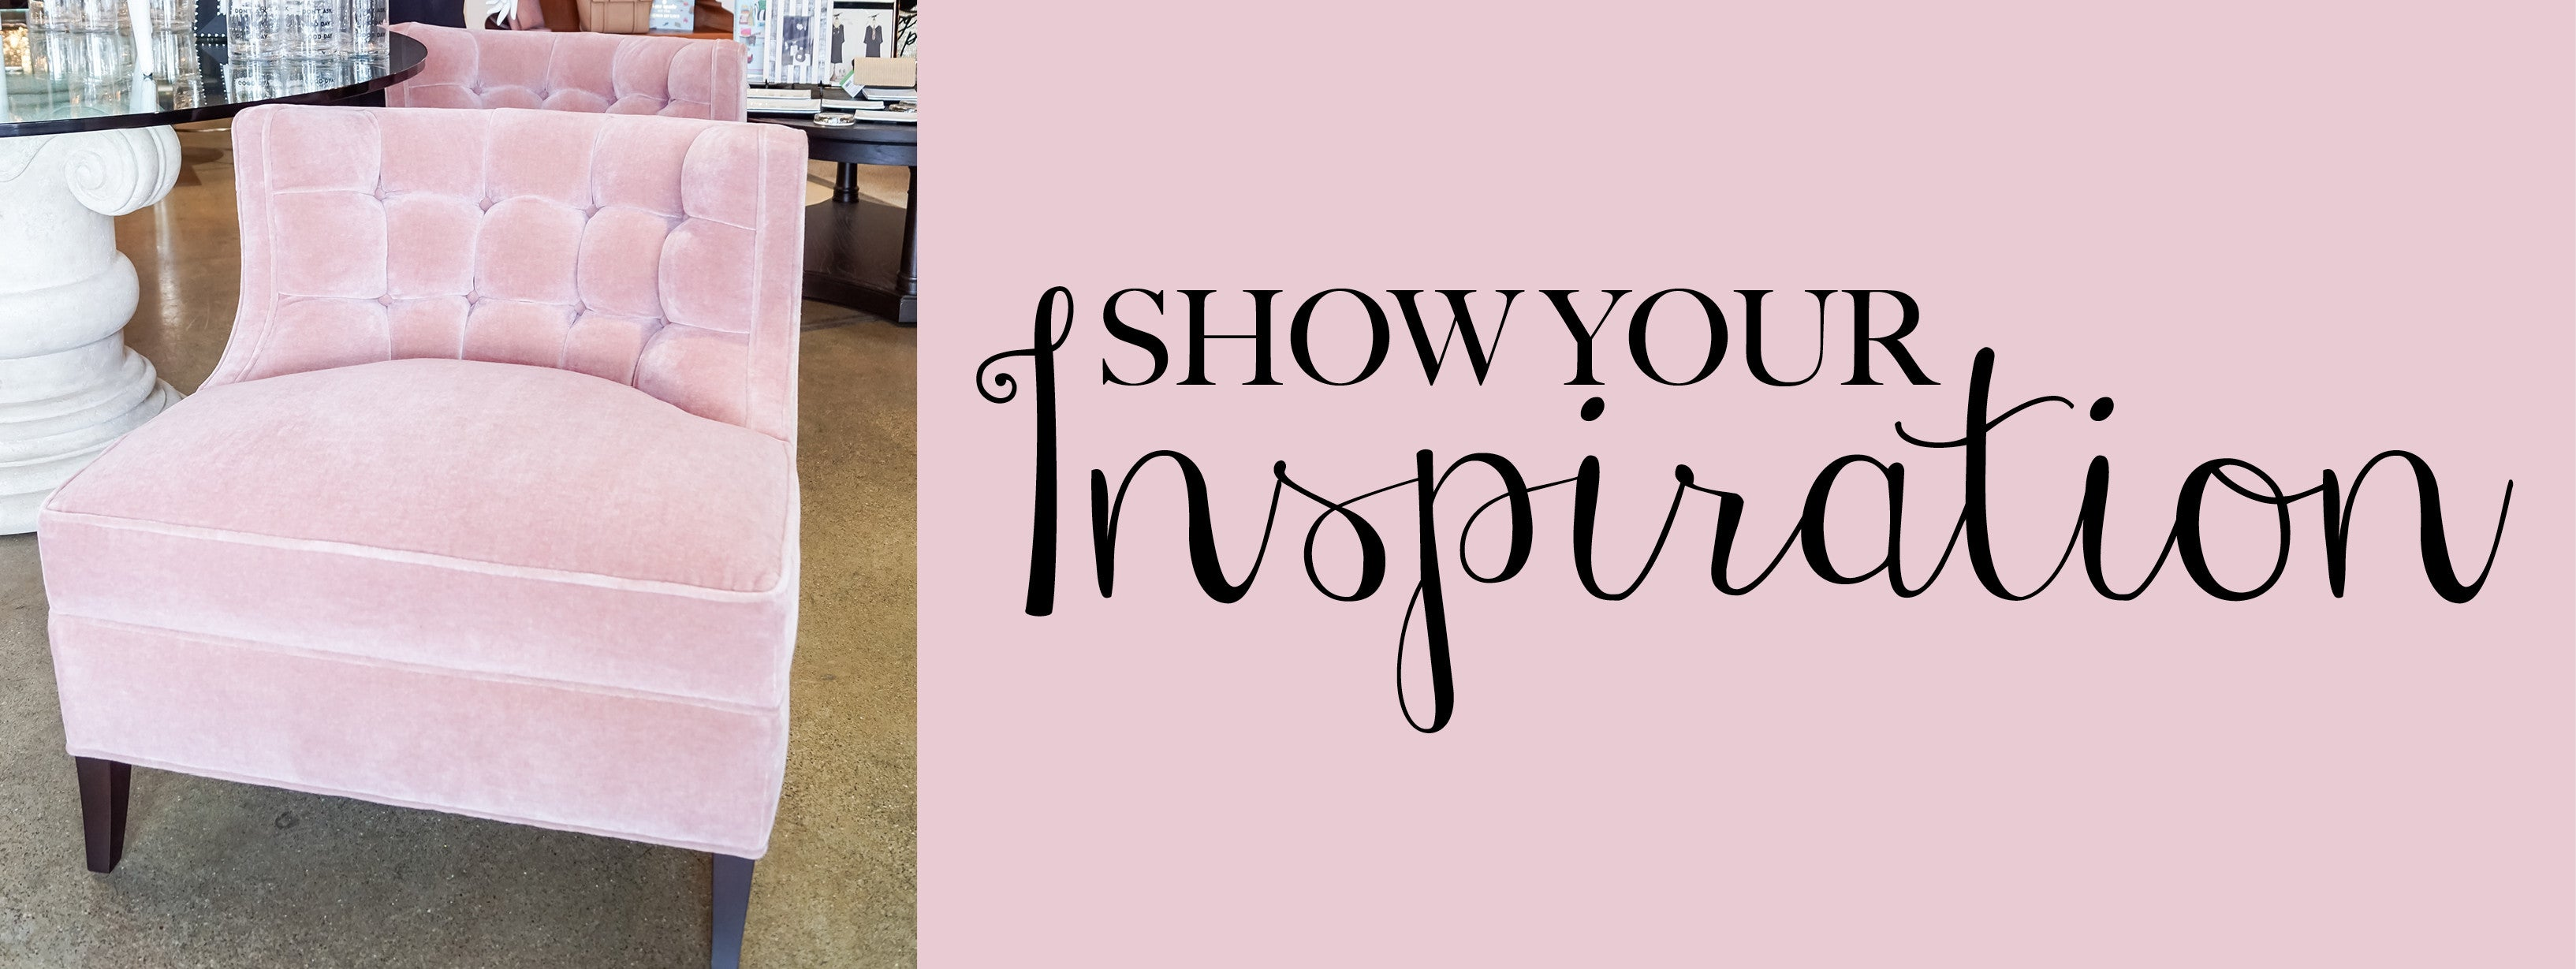 Show your inspiration